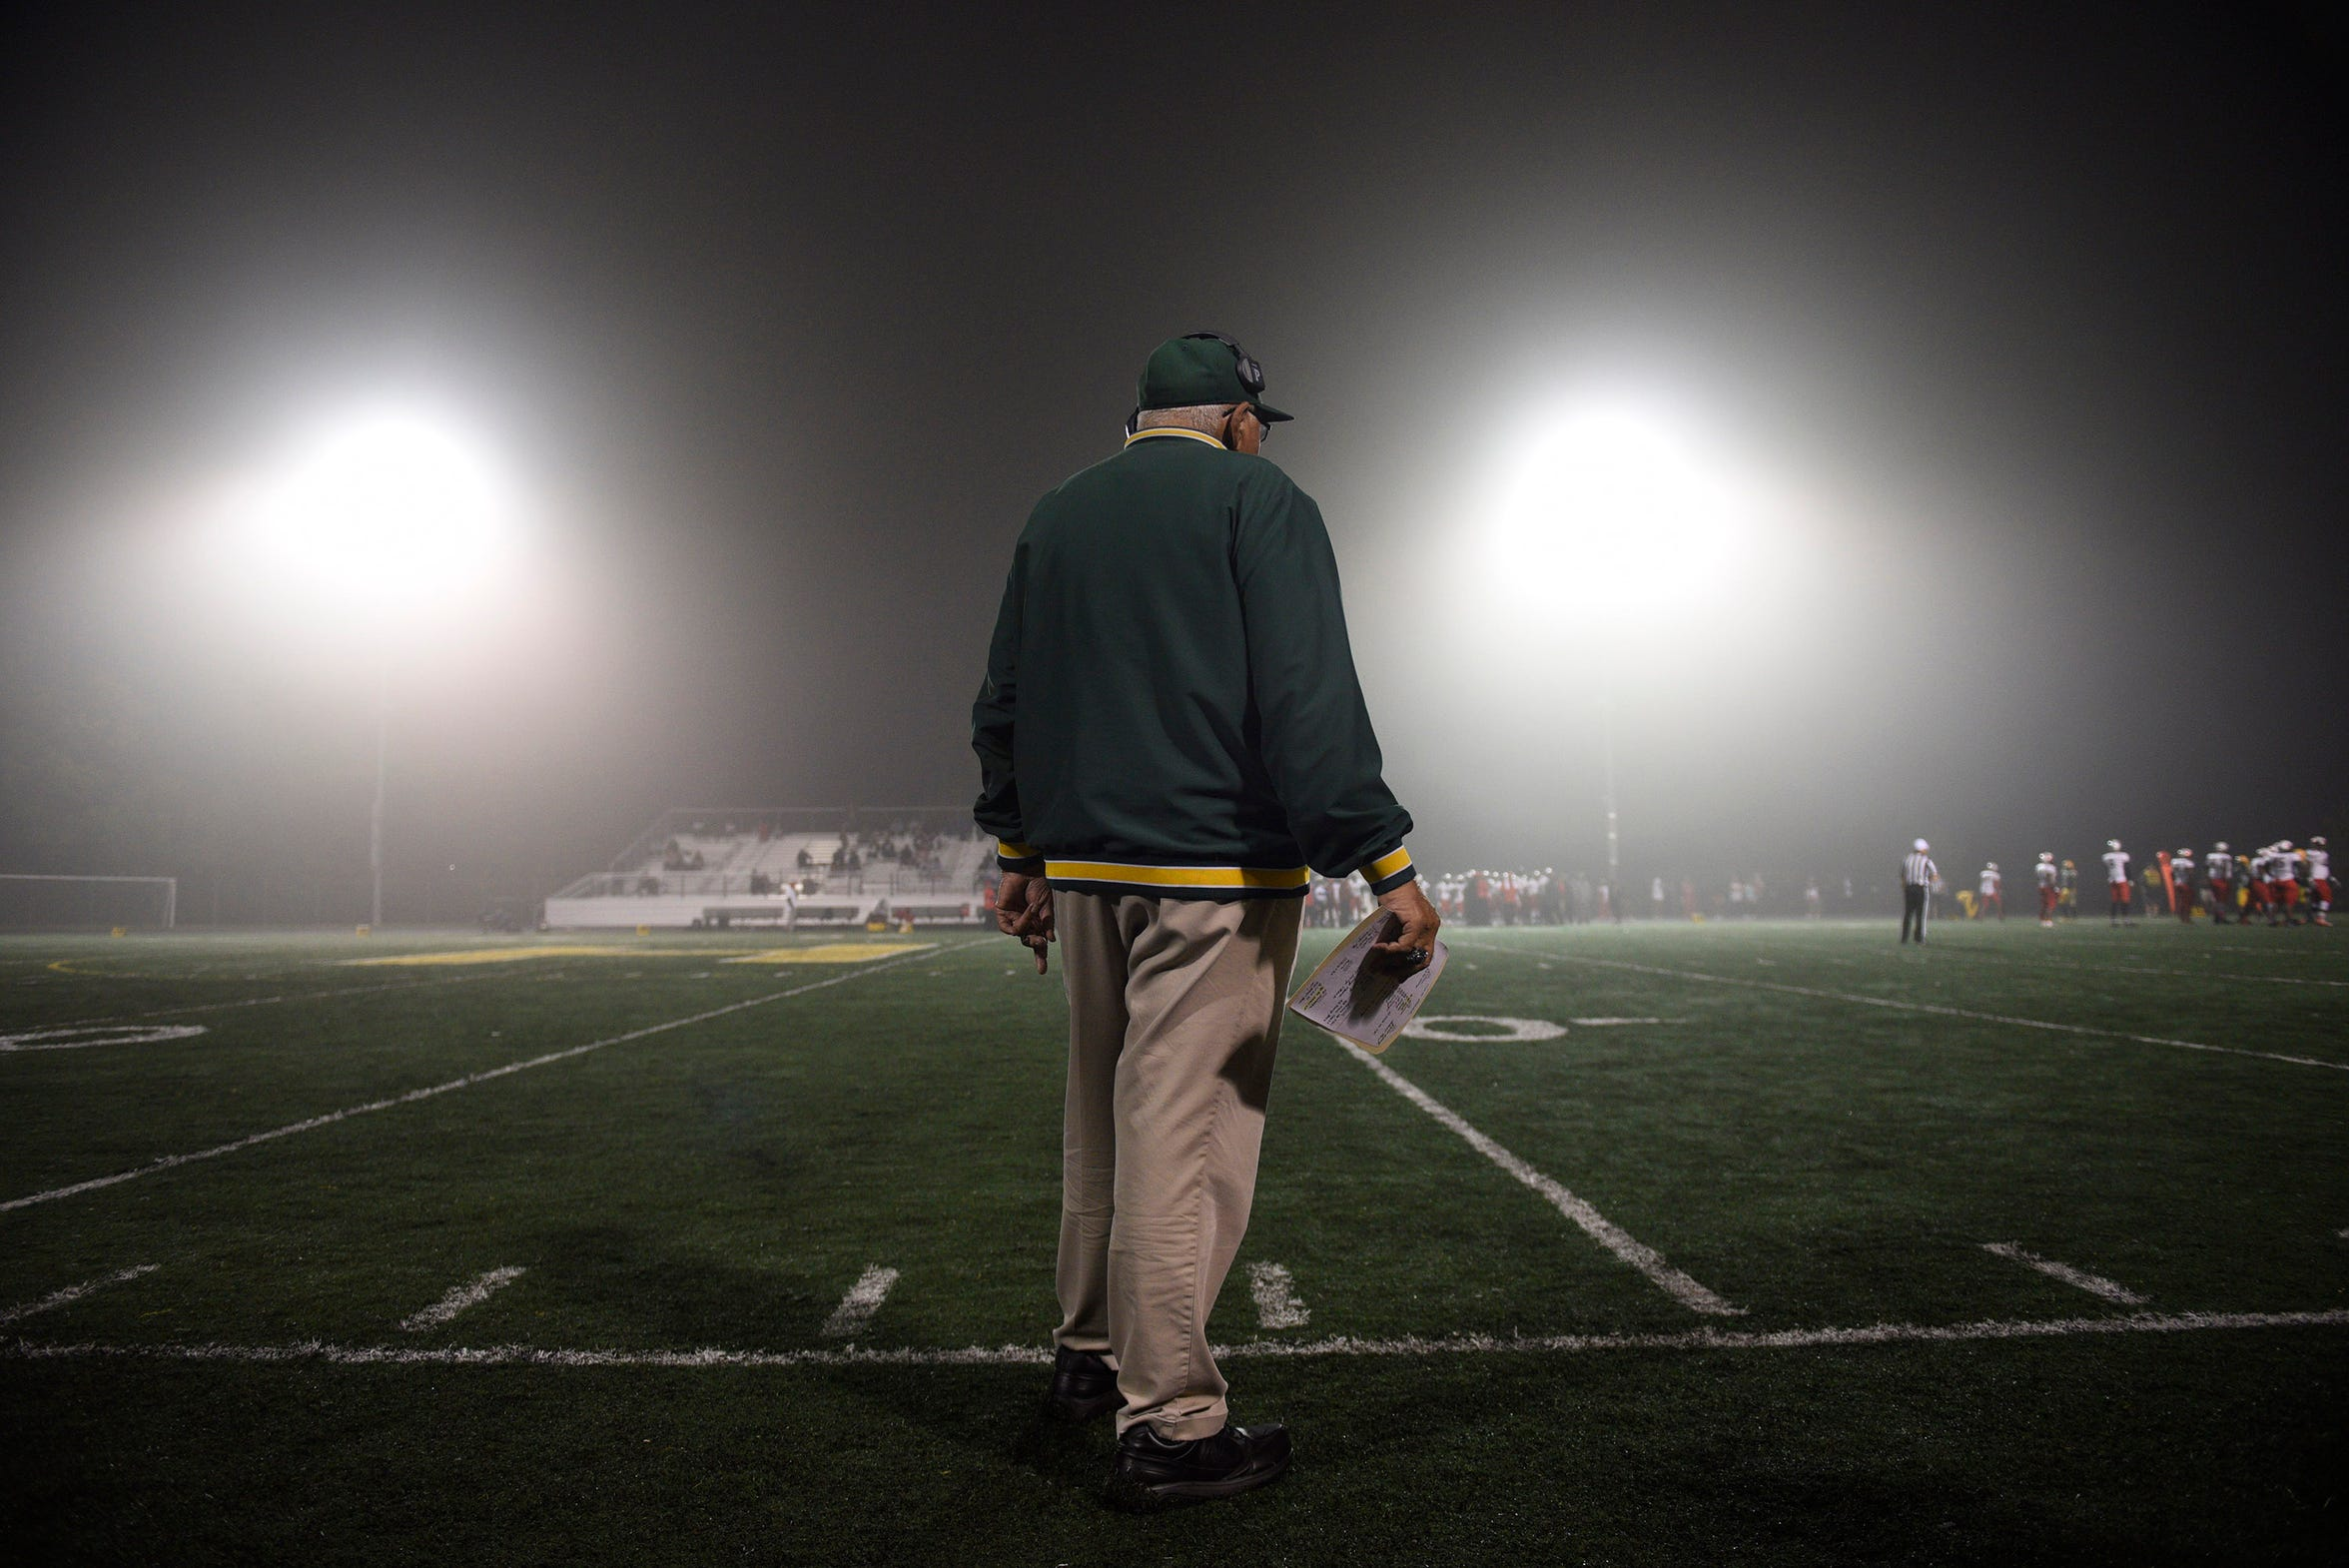 John Herrington on the foggy sidelines Oct. 6, 2017 moments before the end of the game against Oak Park won by the Hawks 17-14. The win gave Herrington 431 career victories tying him at the time with former Brother Rice Coach Al Fracassa for most victories.